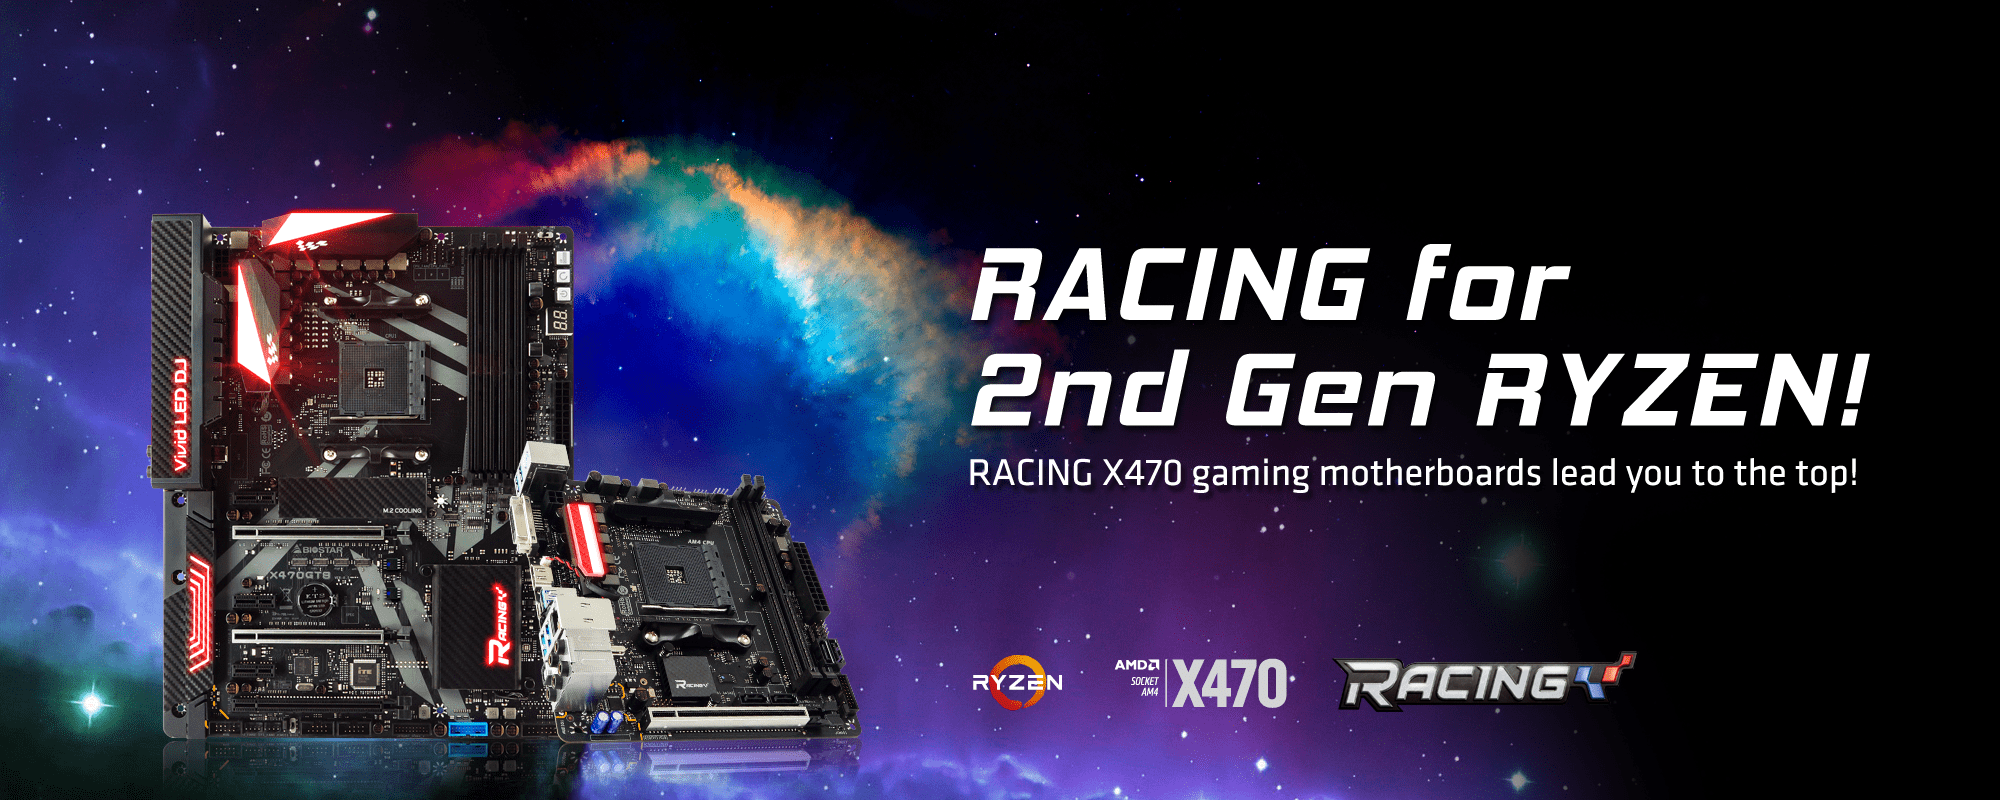 RACING X470 motherboards for 2nd Gen RYZEN lead you to the top